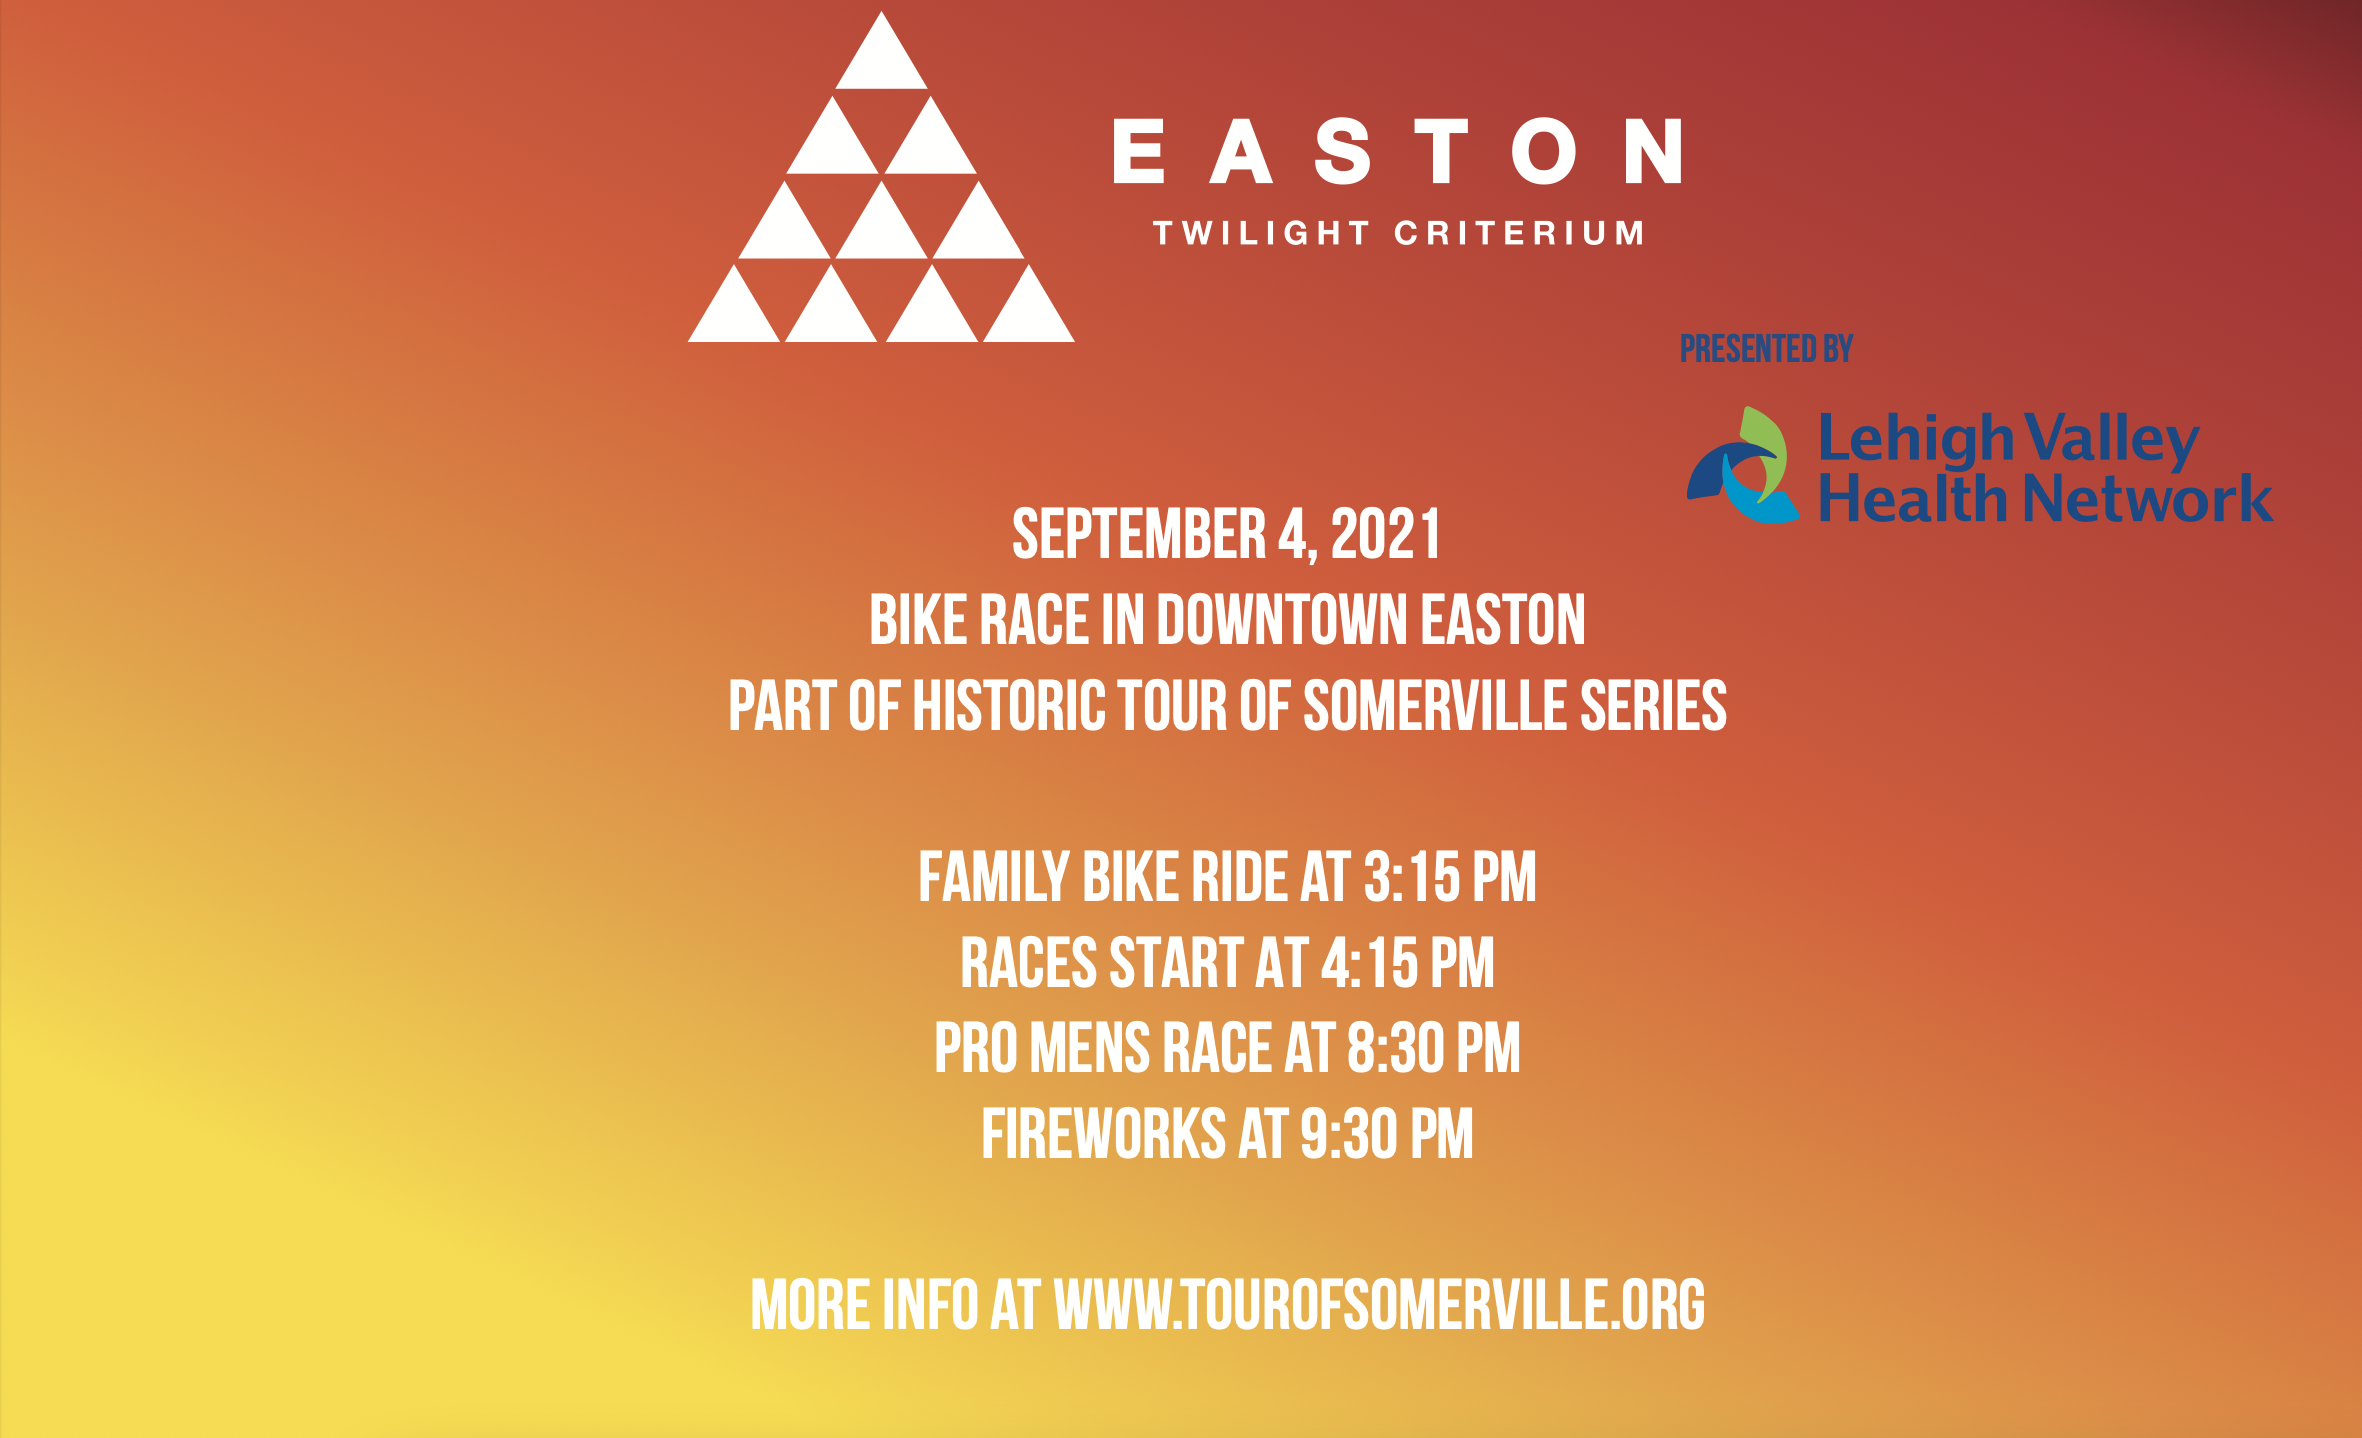 Reserve a Seat to Dine Outdoors for the Easton Twilight Criterium